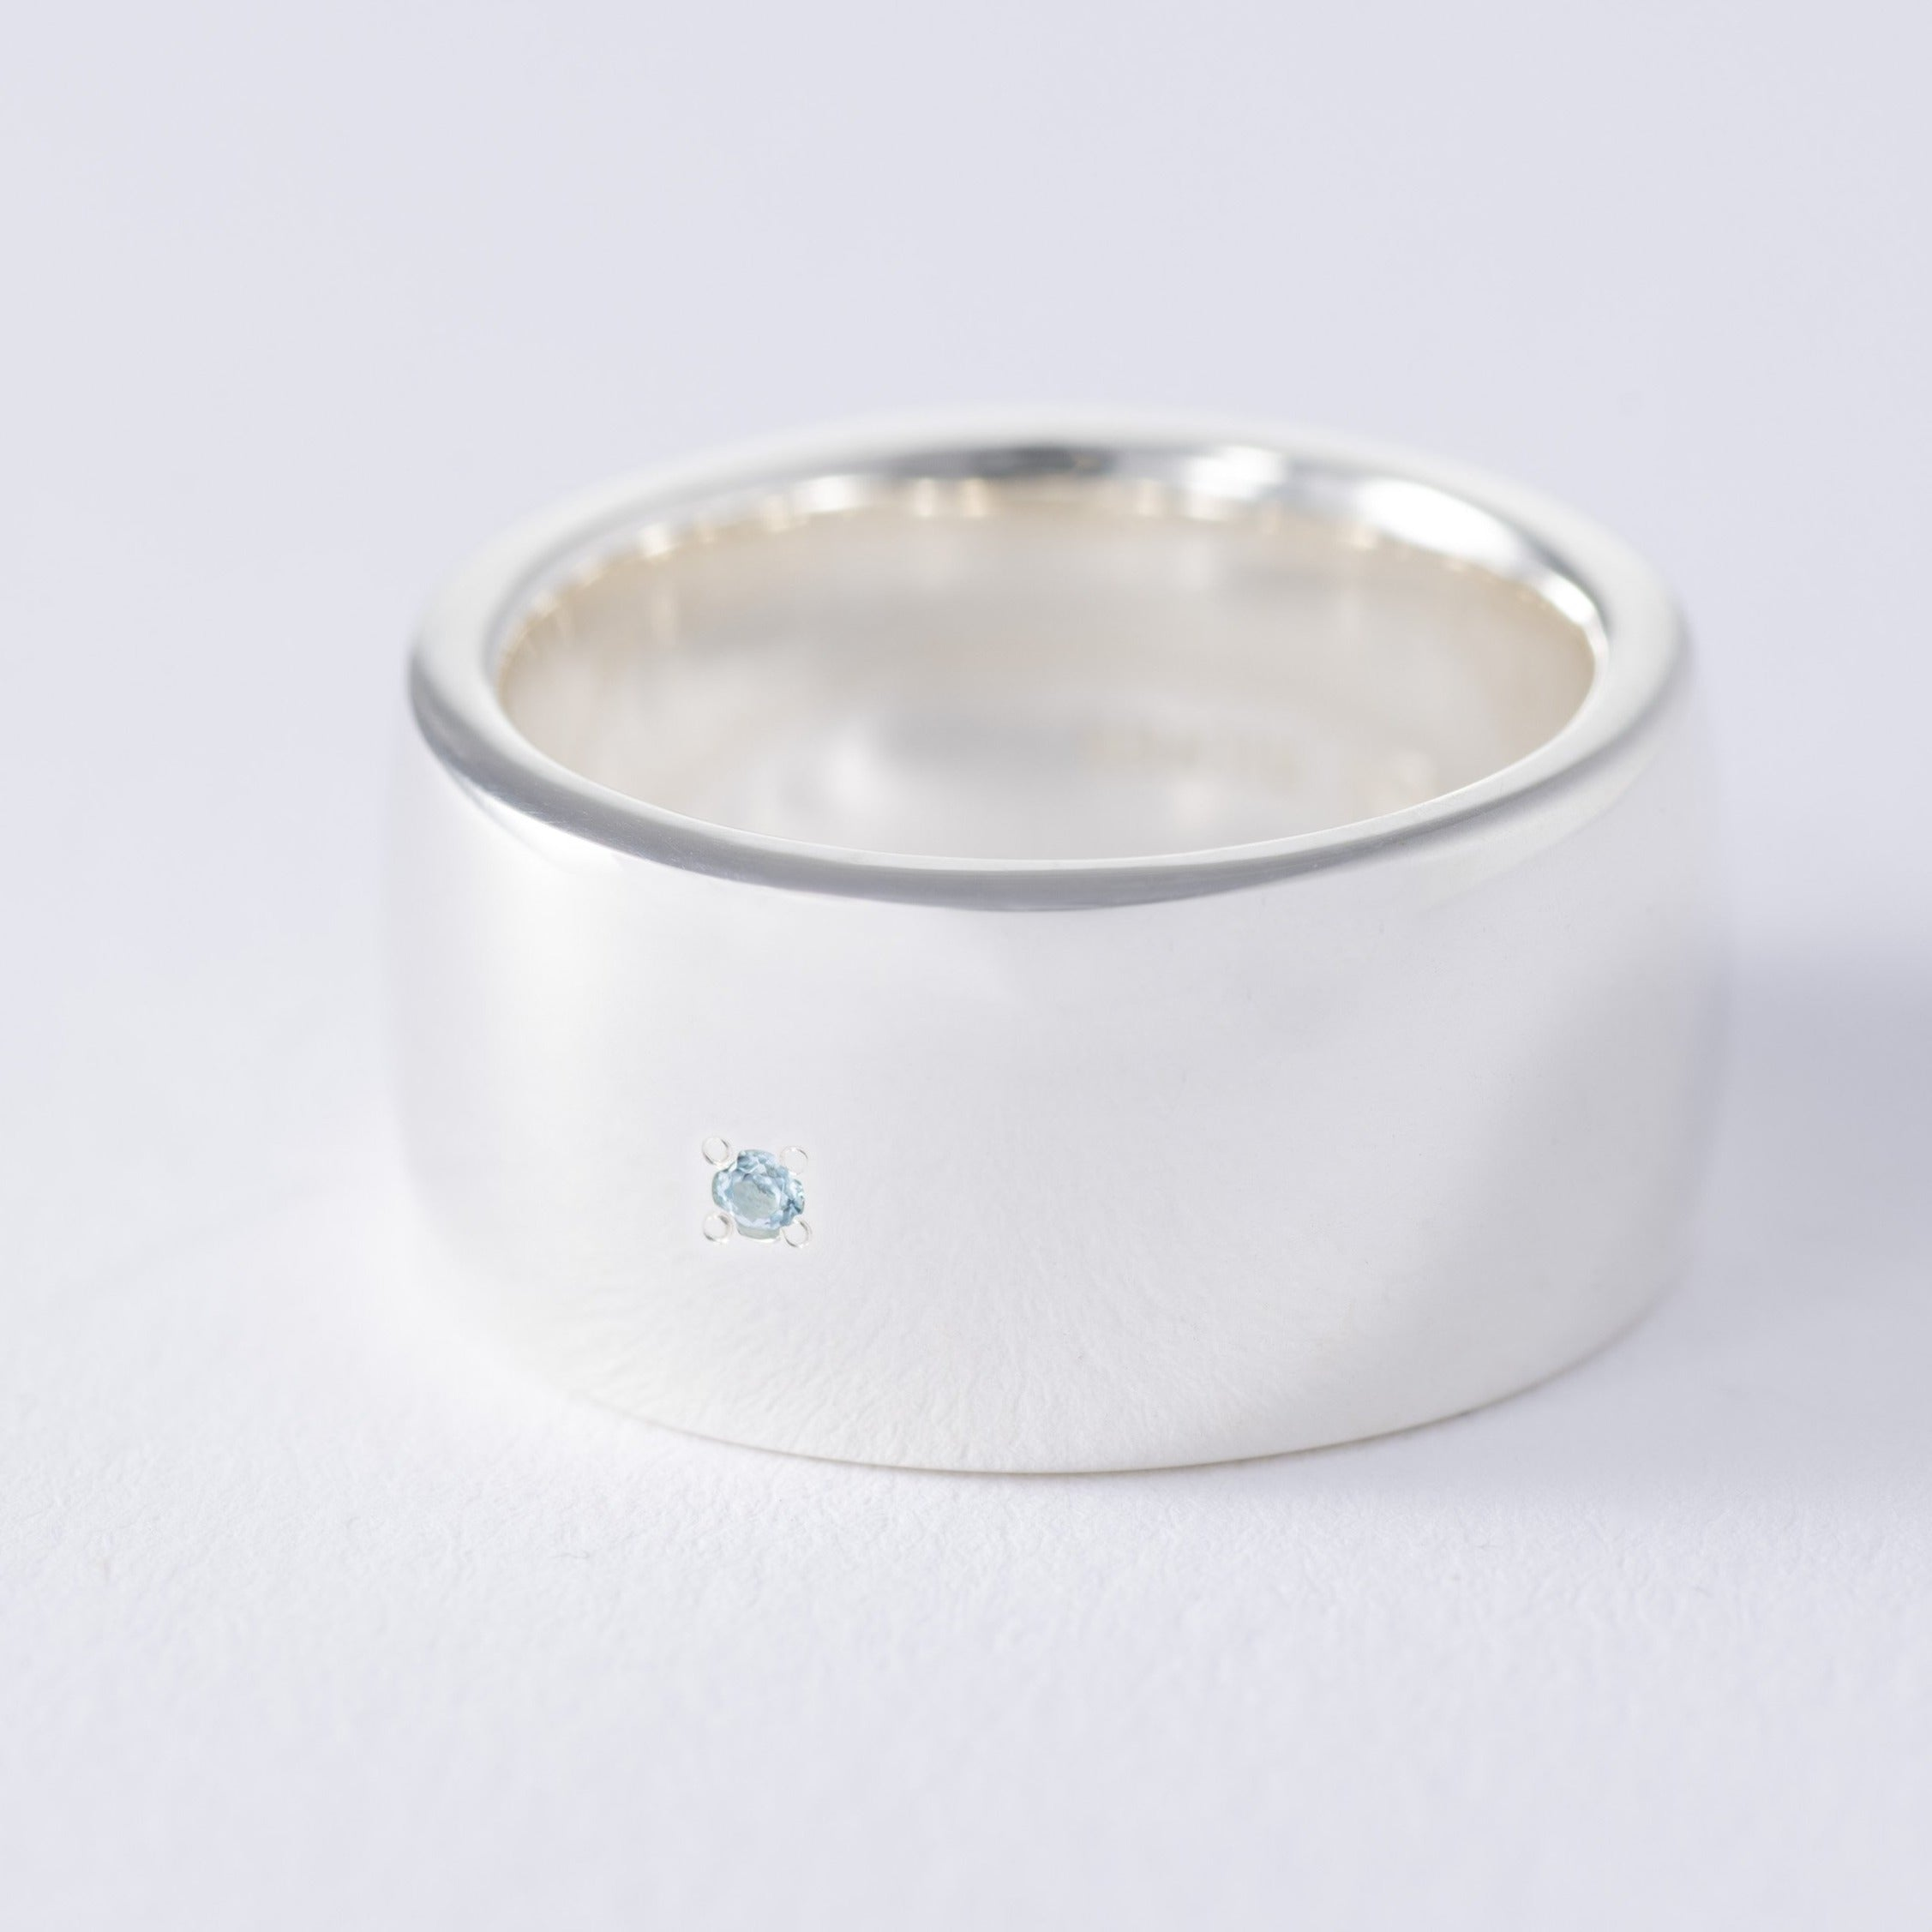 【11月誕生石】silver birthstone blue topaz ring[made to order]